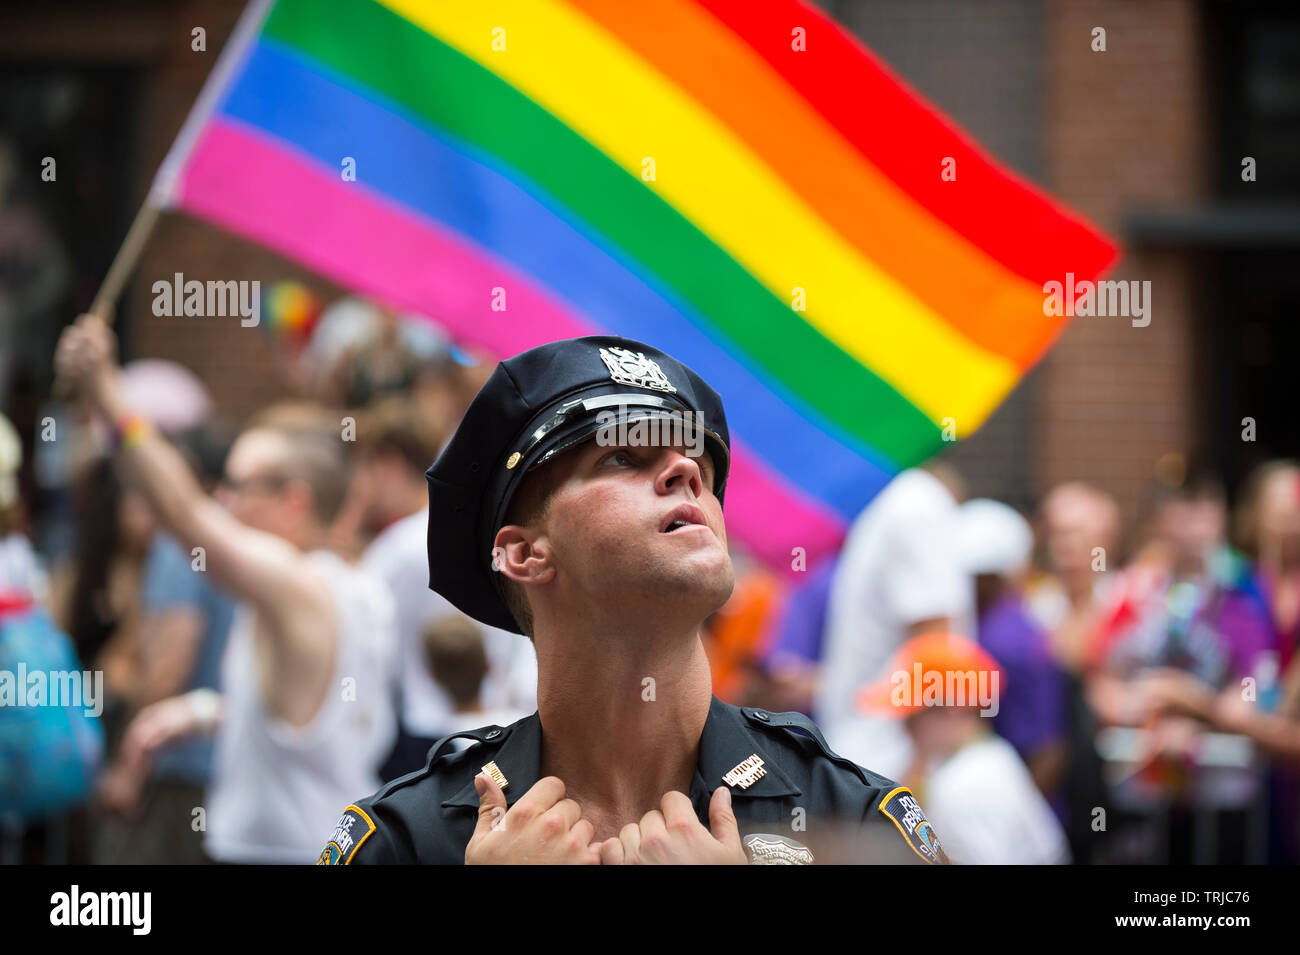 NEW YORK CITY - JUNE 25, 2017: A young NYPD police officer provides security on the sidelines of the annual Gay Pride Parade in Greenwich Village. - Stock Image